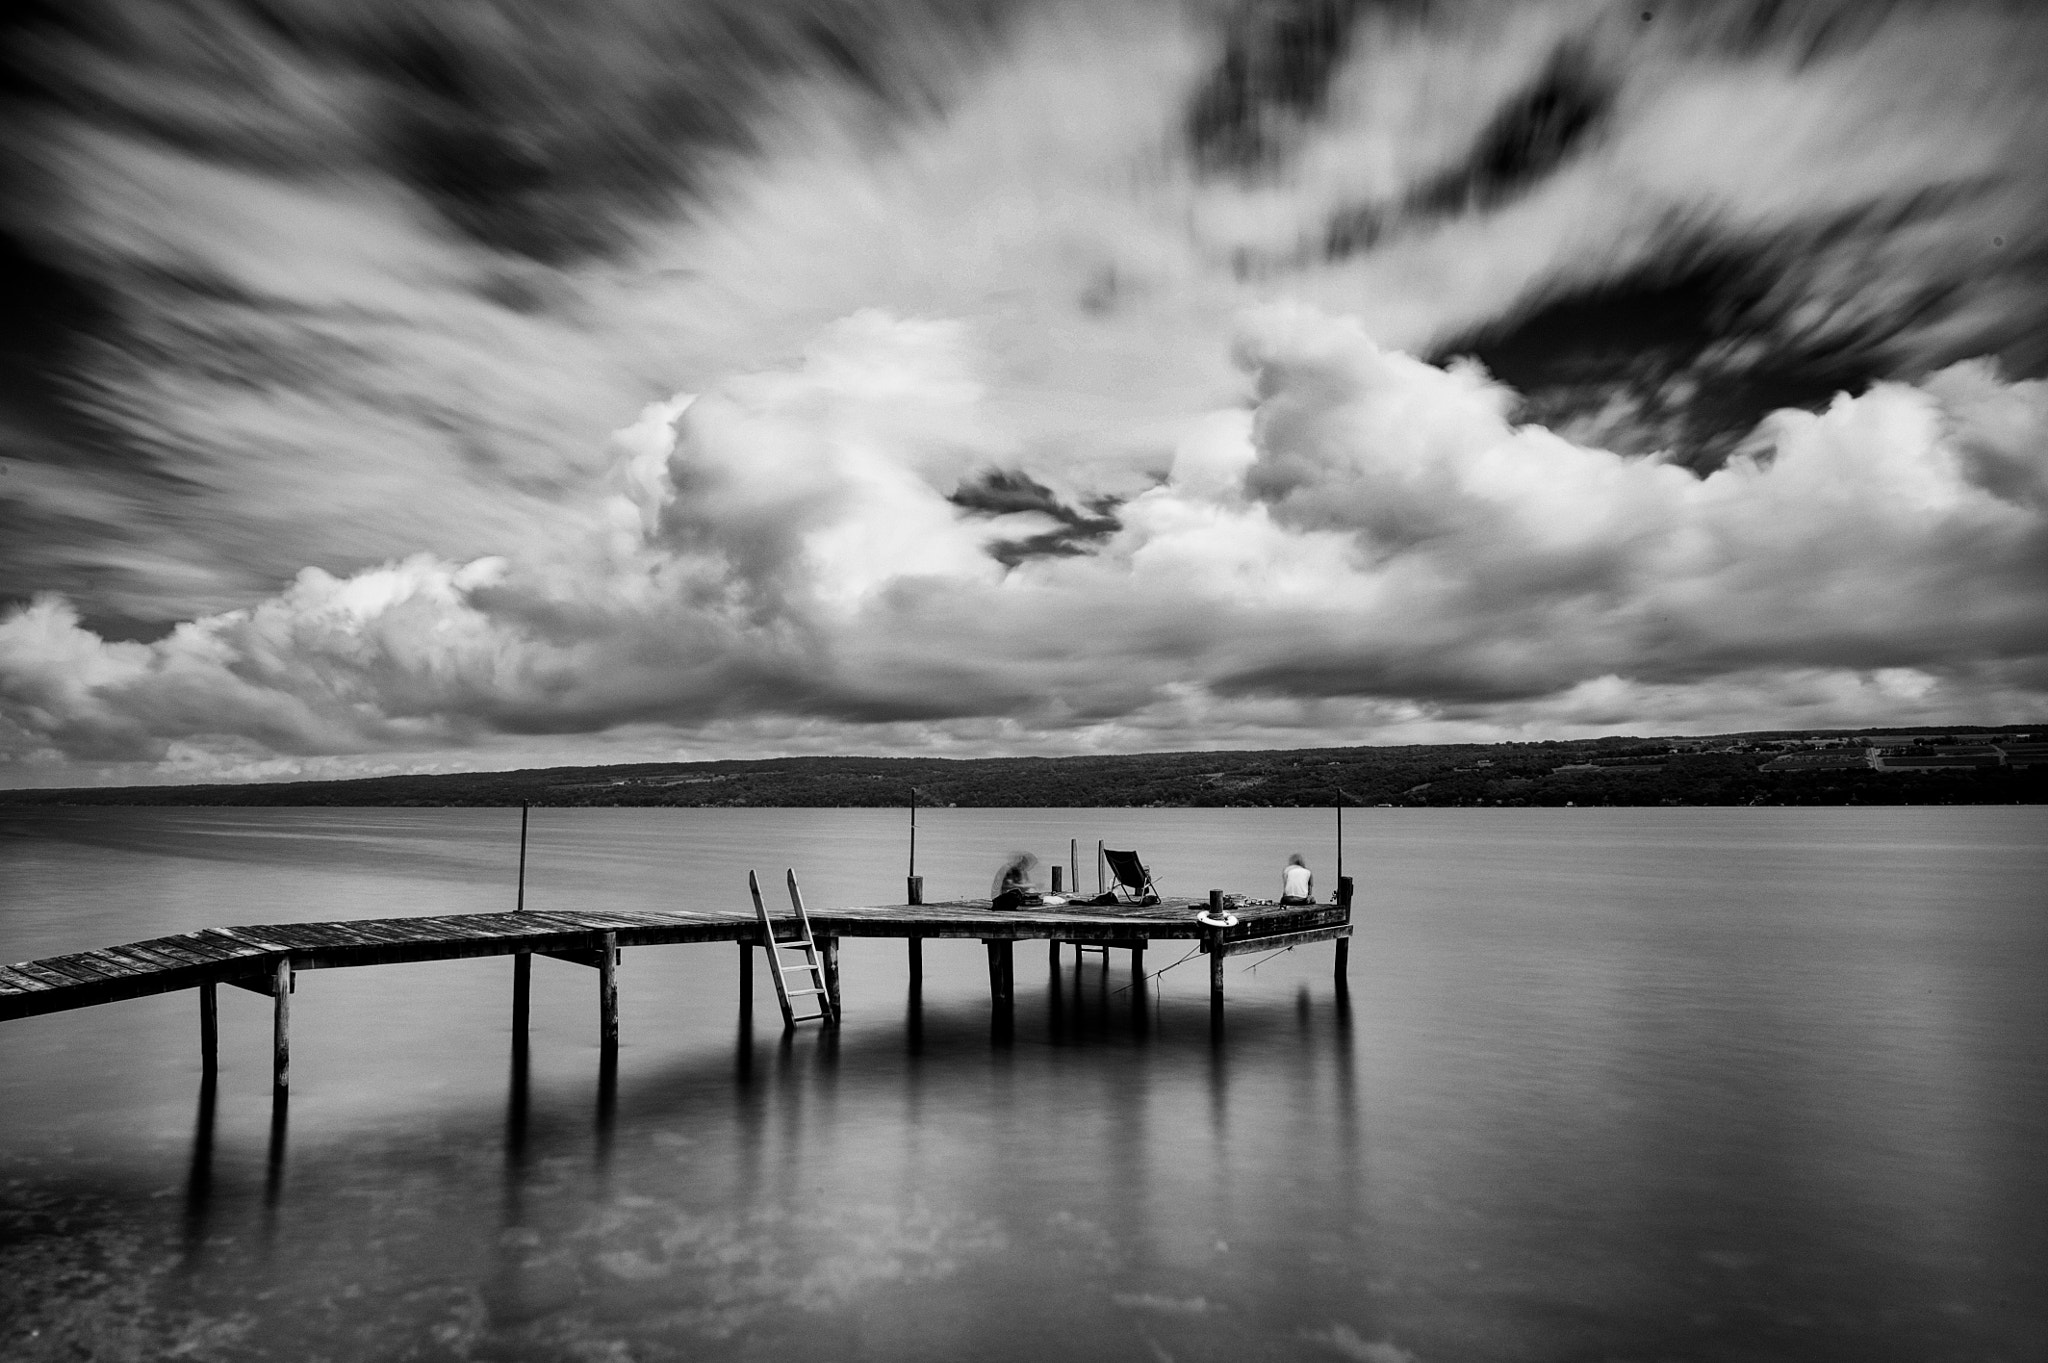 Photograph Seneca lake by John Richards on 500px